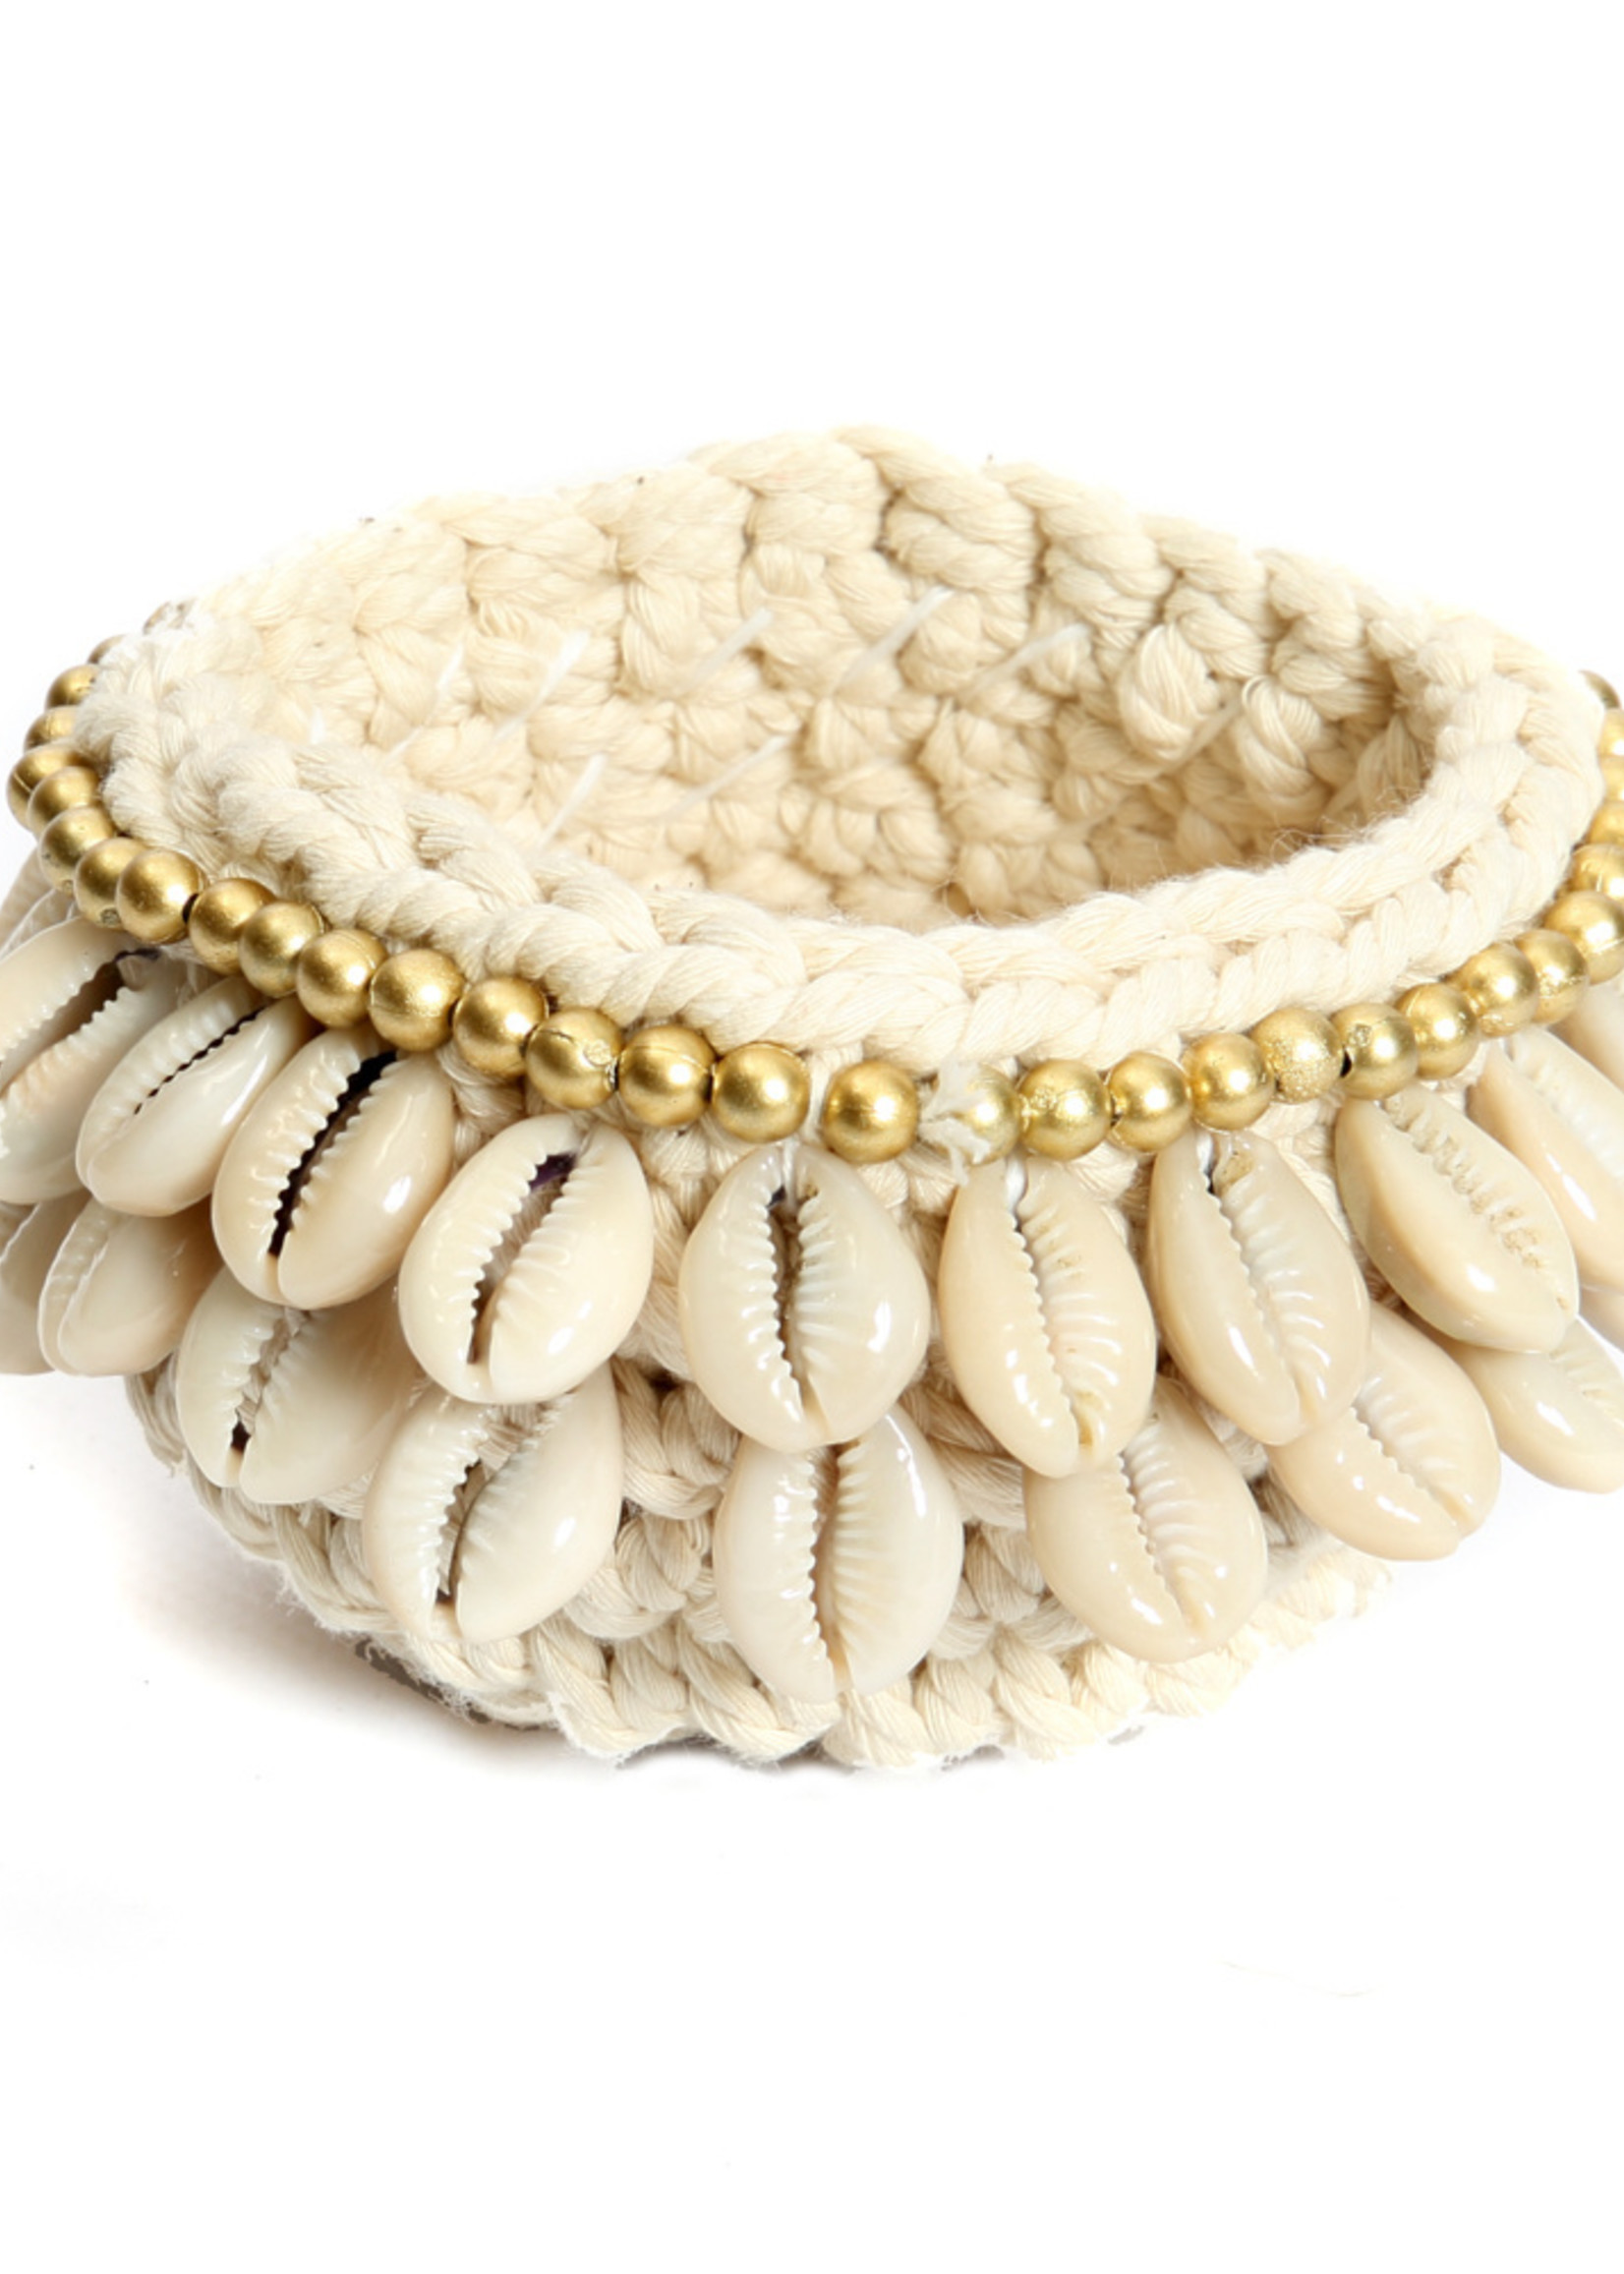 The Gold & Cowrie Macrame Candle Holder - Natural Gold - S